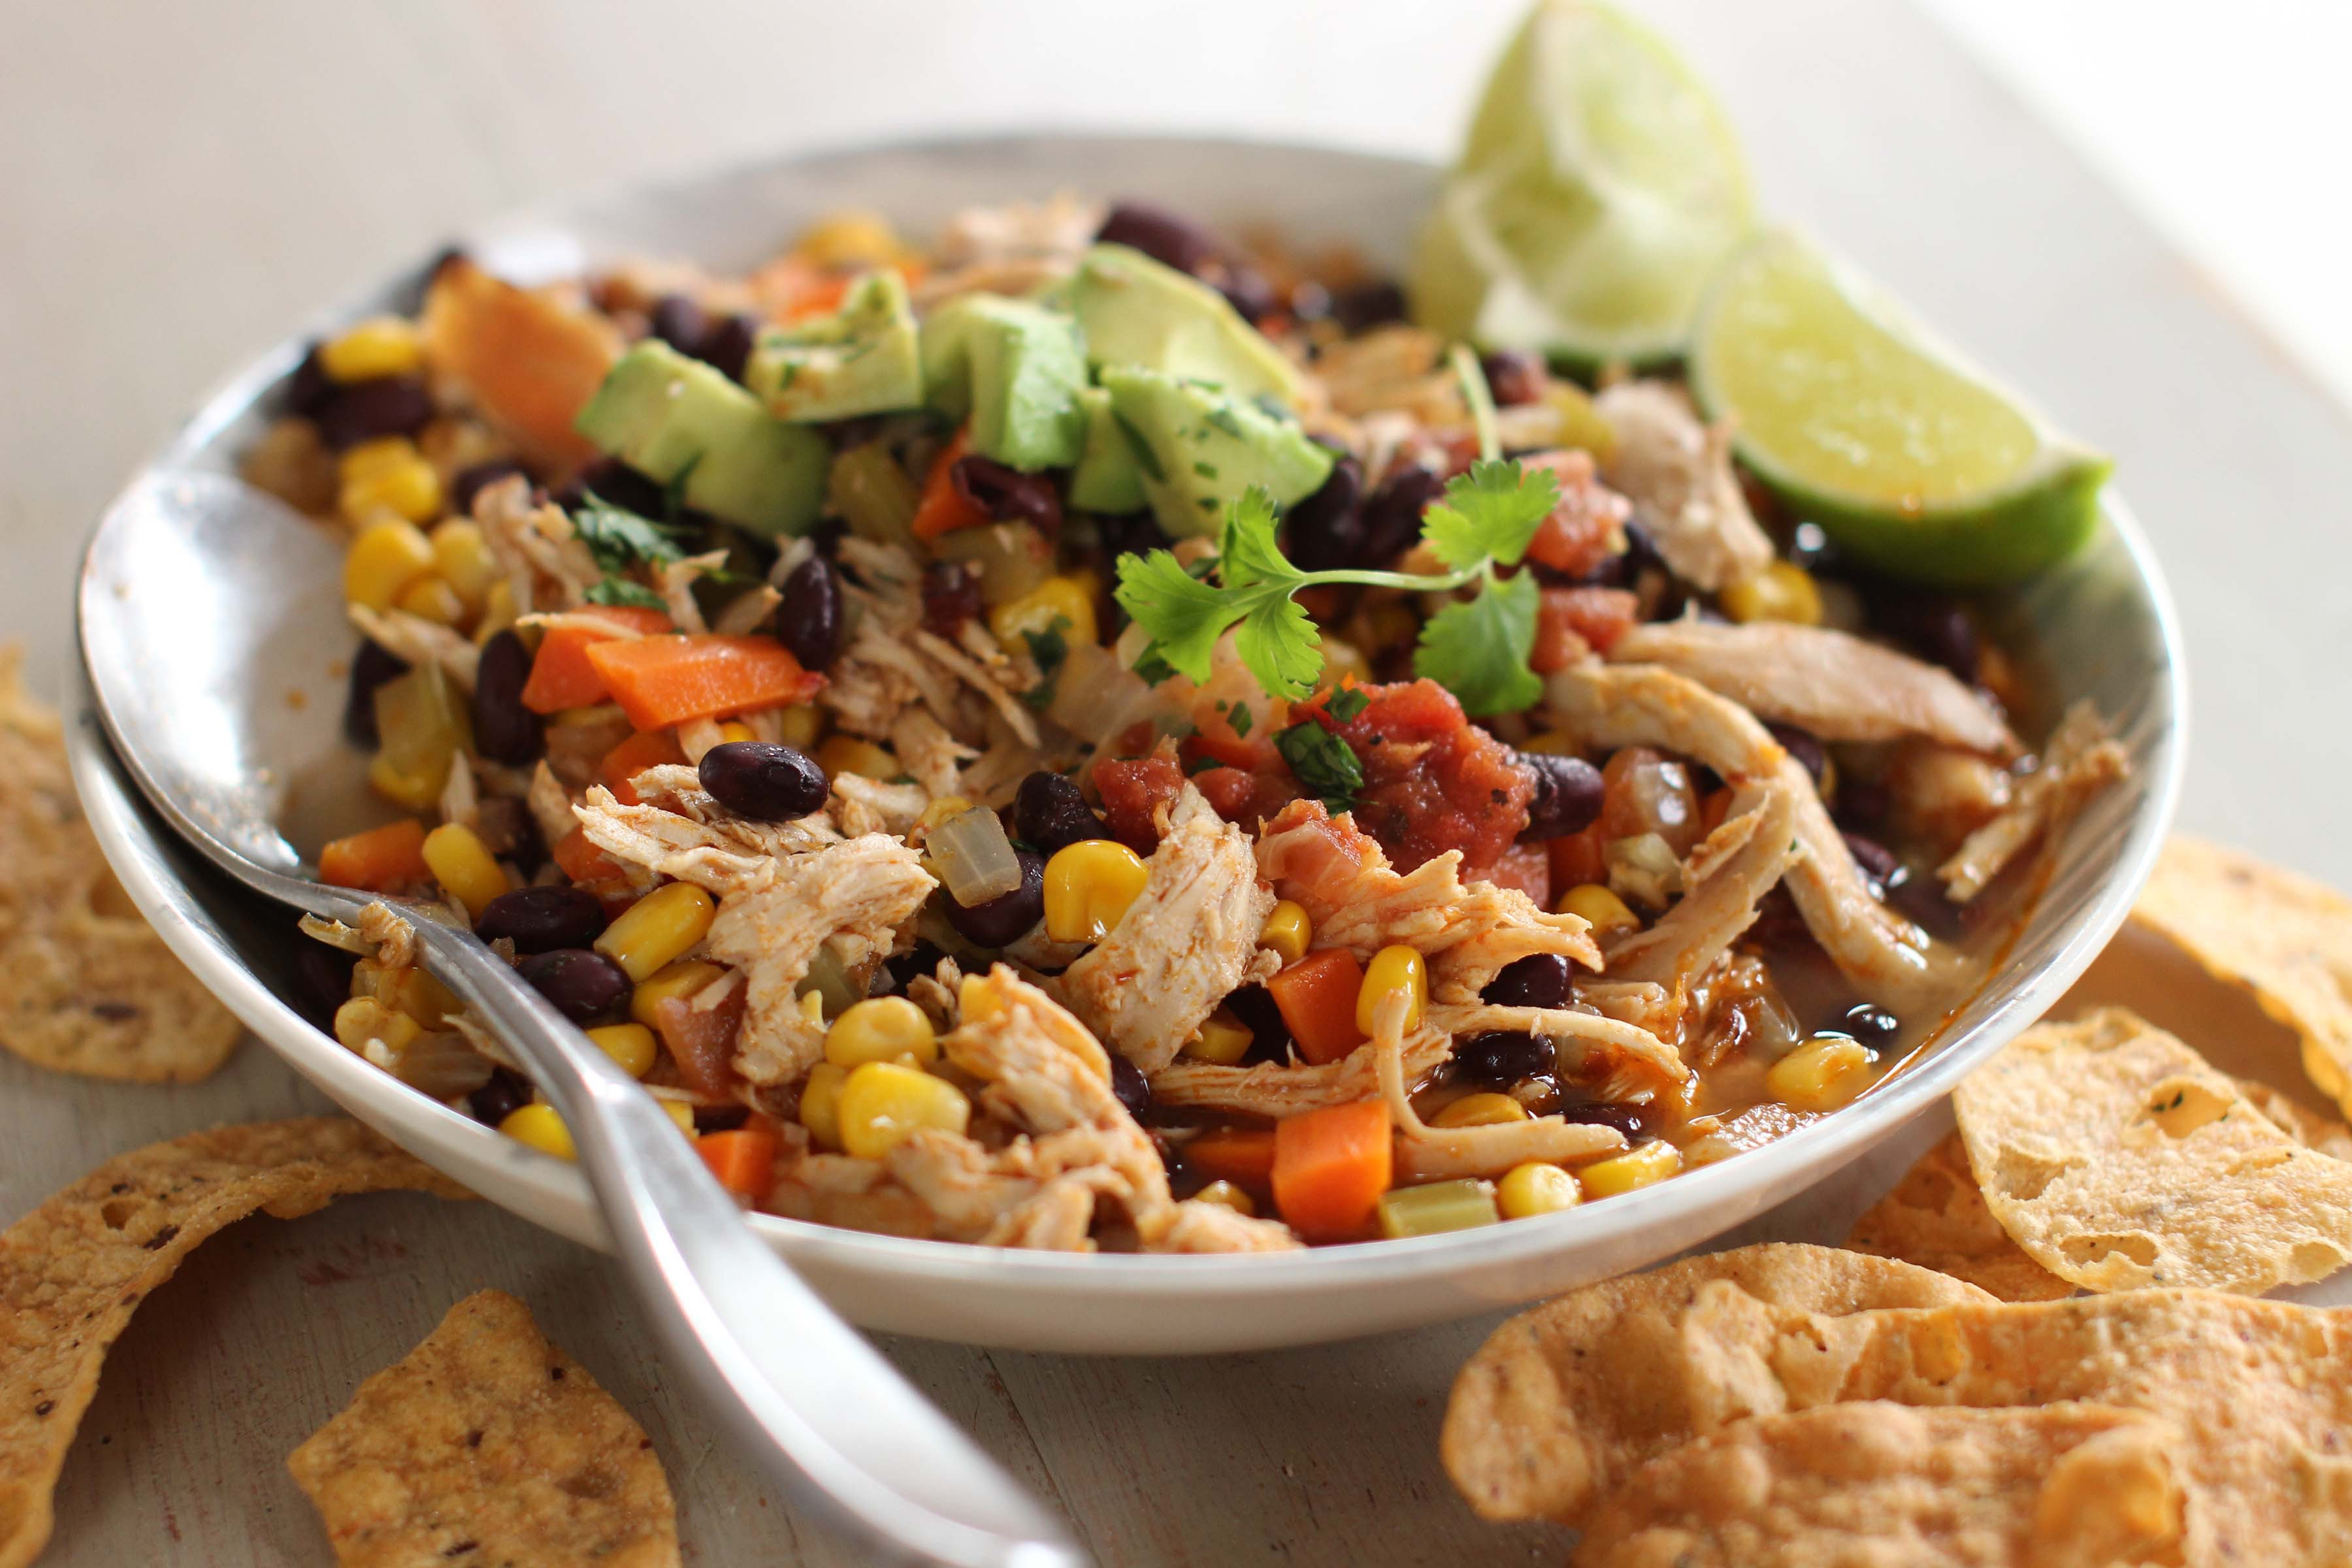 This Nov. 30, 2015 photo shows healthy Mexican chicken stew in Concord, NH. The secret to this quick stew is that the chicken already has so much flavor that adding just a little spice and a little acid (lime juice) makes the flavors taste far more complex than the quick and healthy little dinner gem that this dish is.(AP Photo/Matthew Mead)